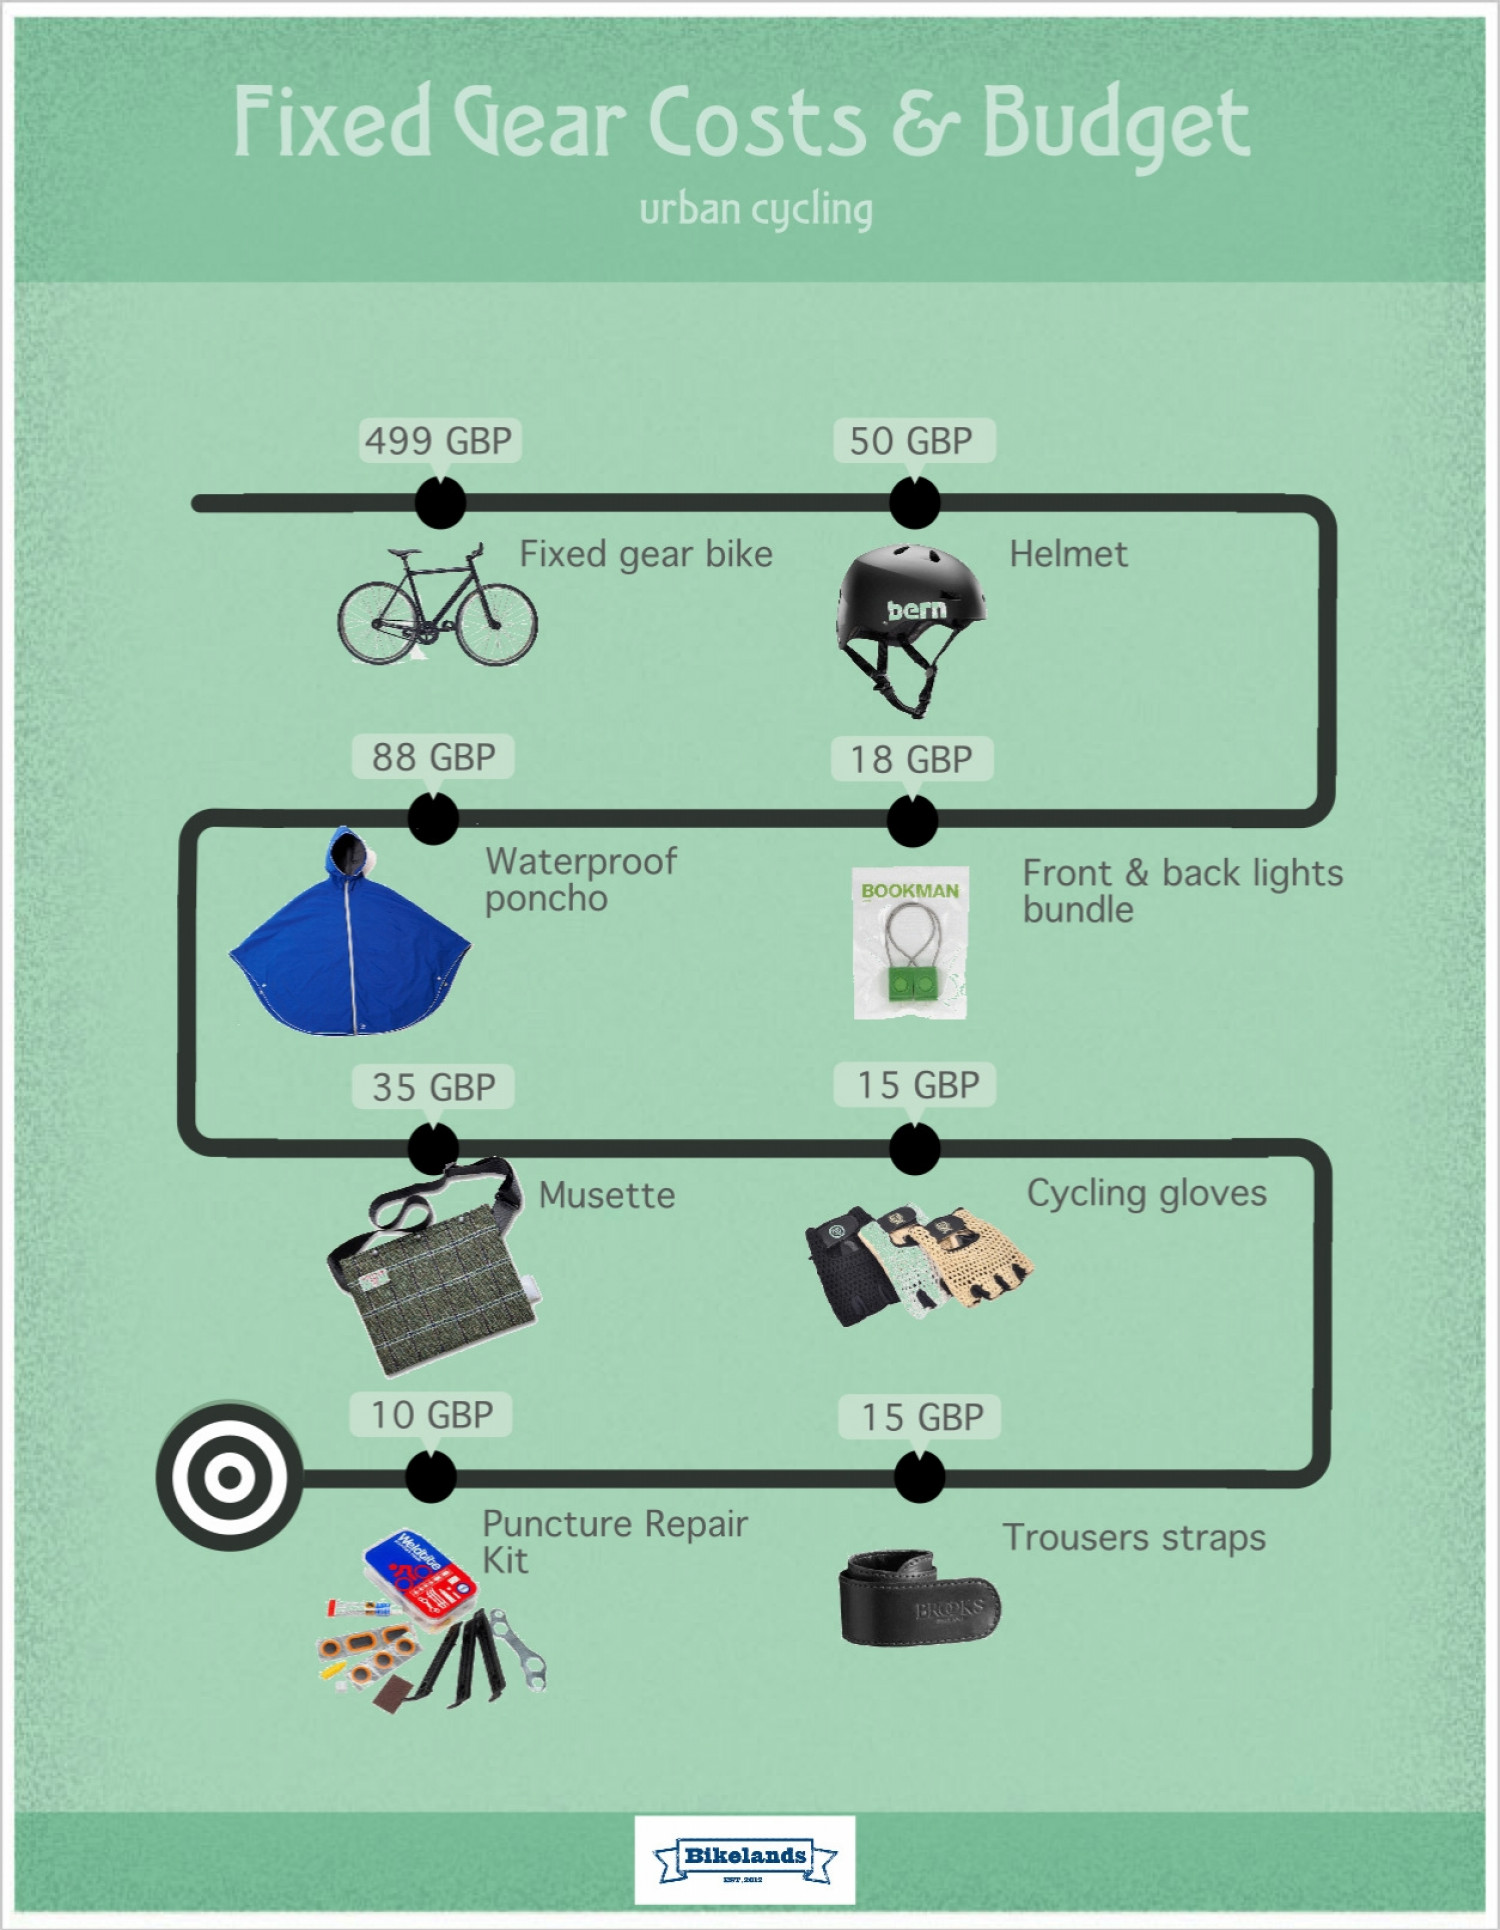 Fixed Gear Costs and Accessories Infographic